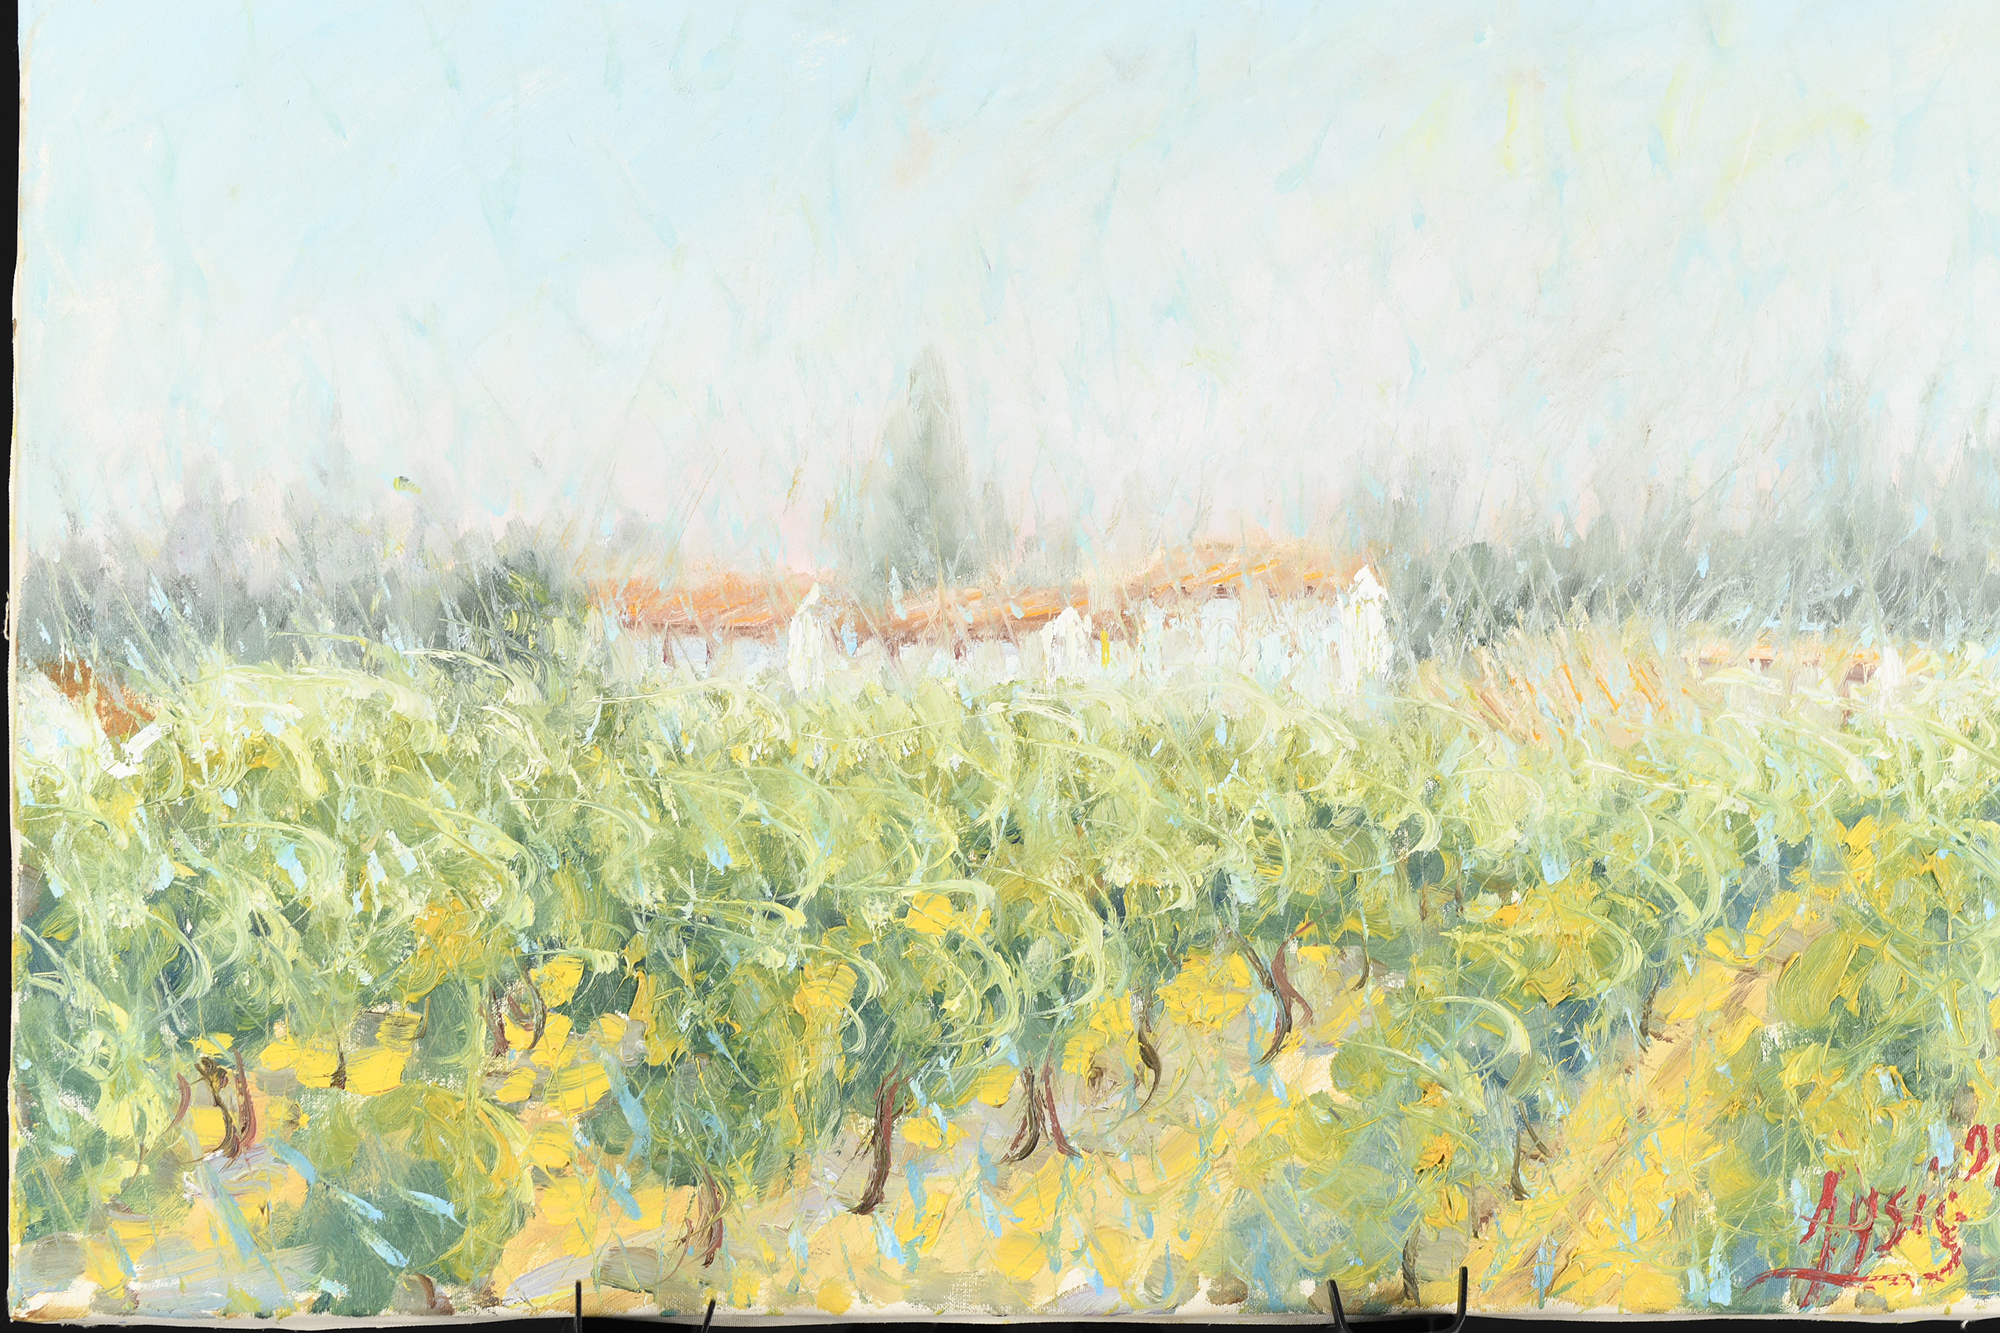 Original Oil on Canvas by Roberto Masia - Image 3 of 6